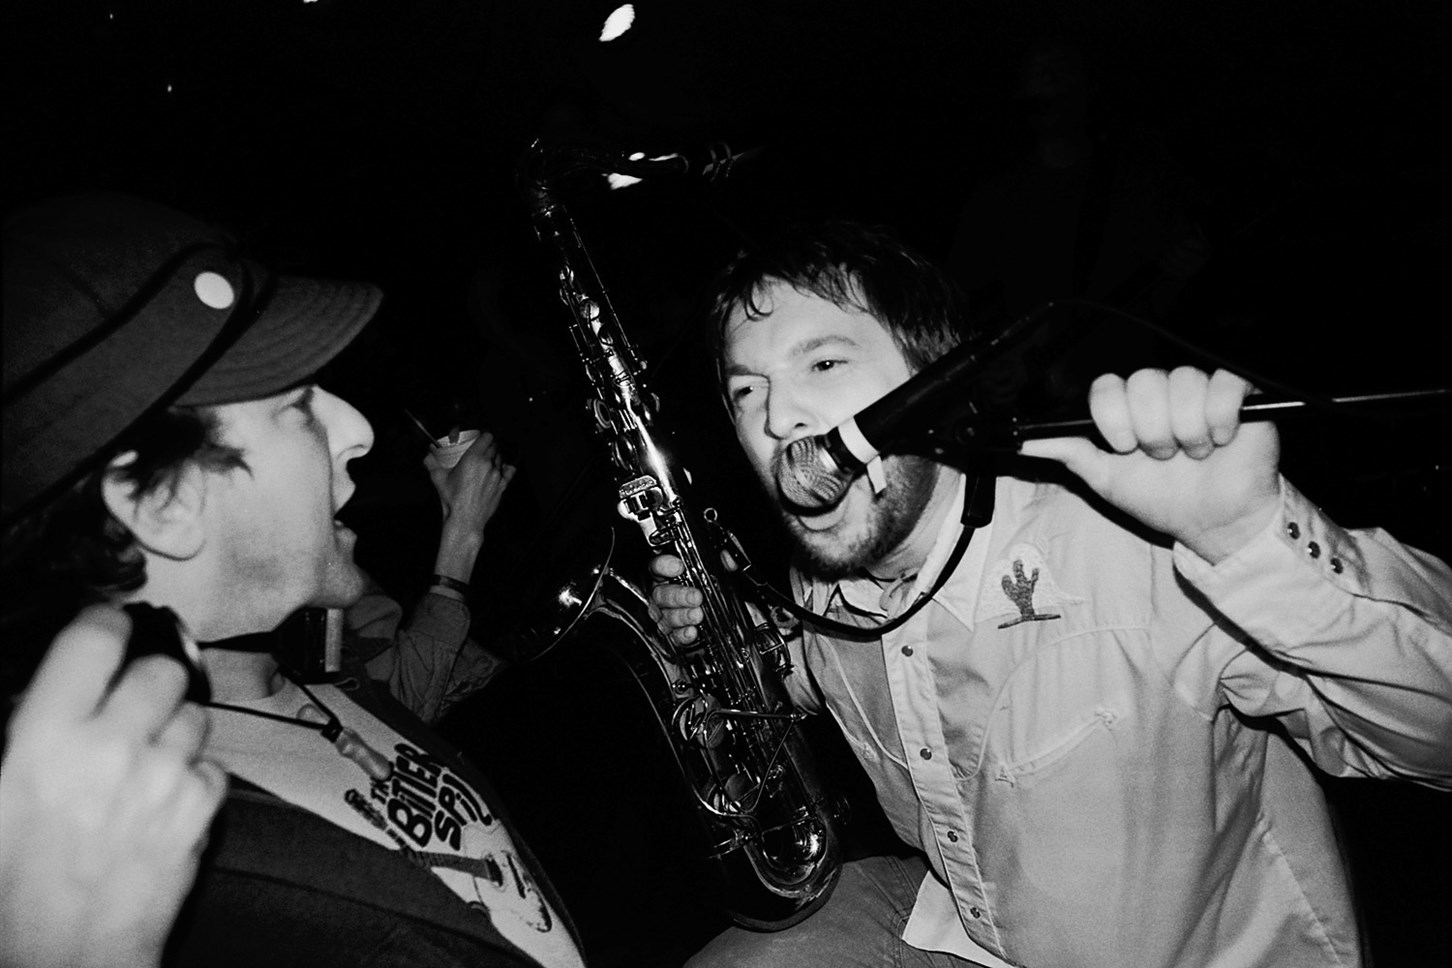 Starfire, Saxophone & A Scream, May 2010